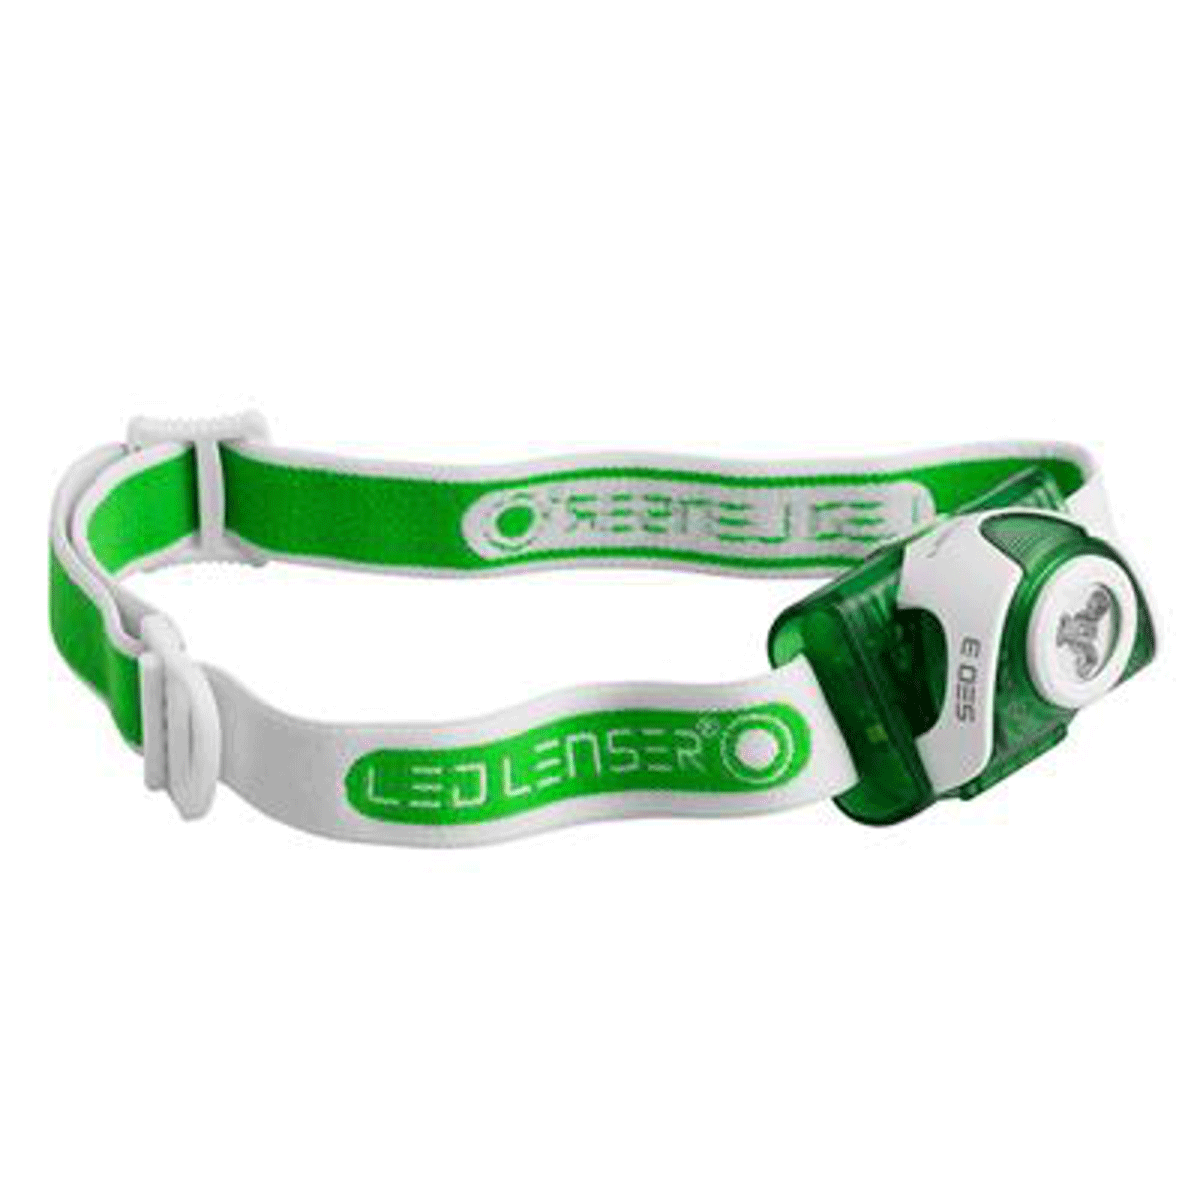 SEO 3 HeadLamp Series - Led Lenser